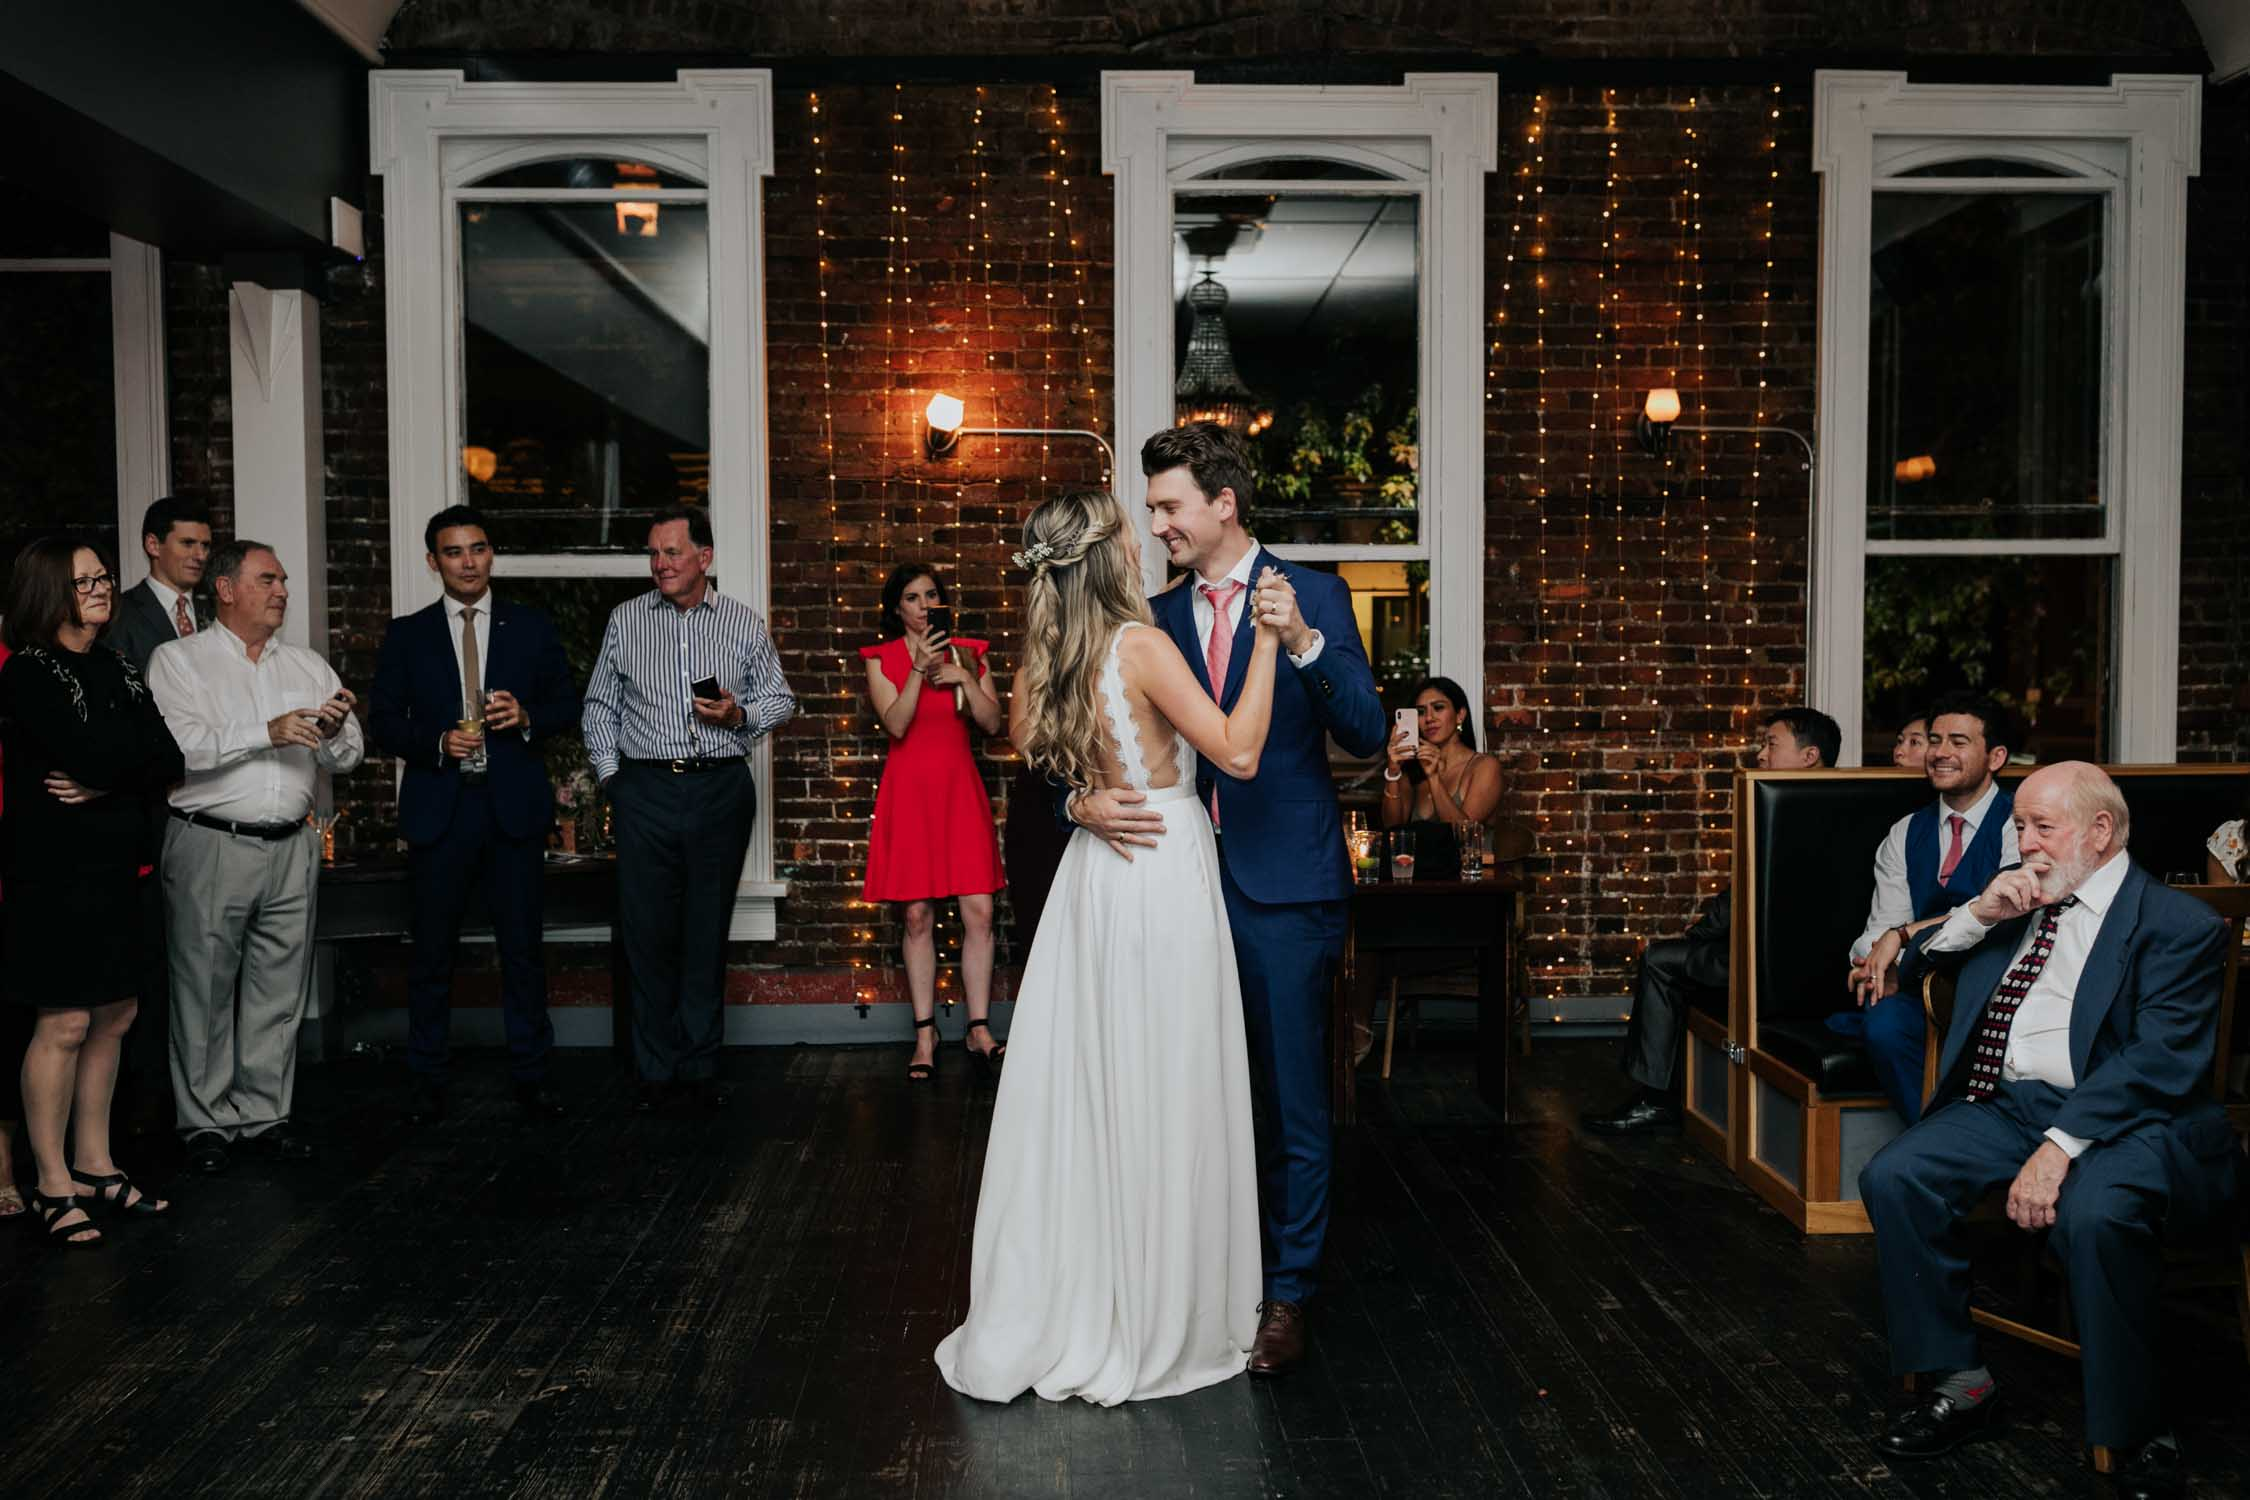 Newlyweds first dance in Vancouver heritage wedding venue